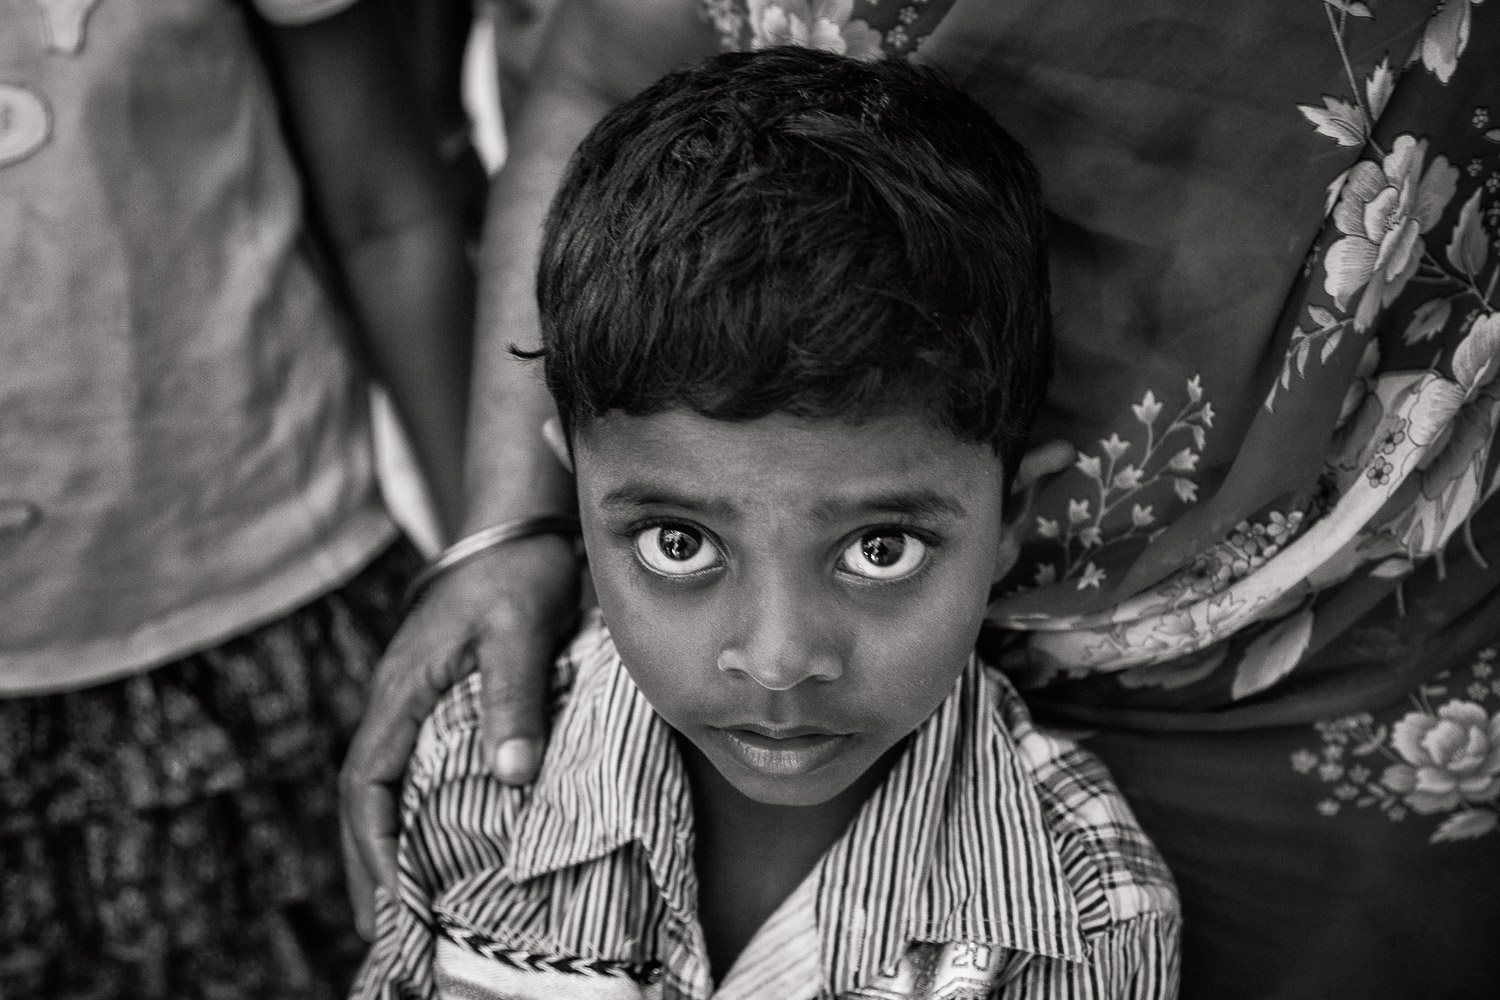 A highly emotive portrait of a young boy on  St. Thomas Mount  near  Chennai, India .